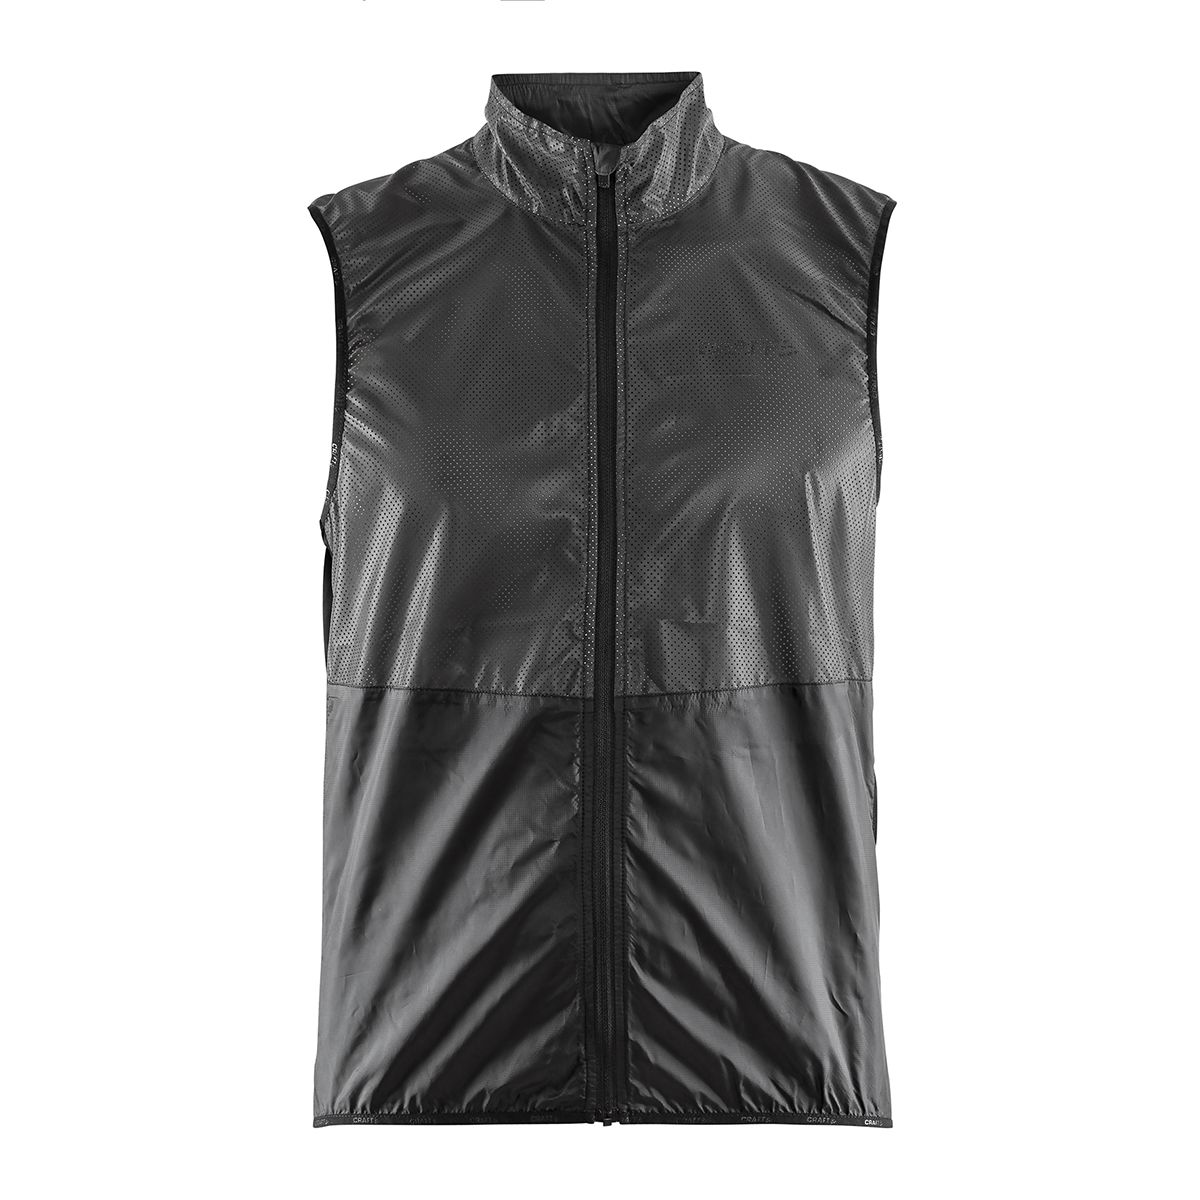 CRAFT GLOW VEST M men's cycling gilet | Vests